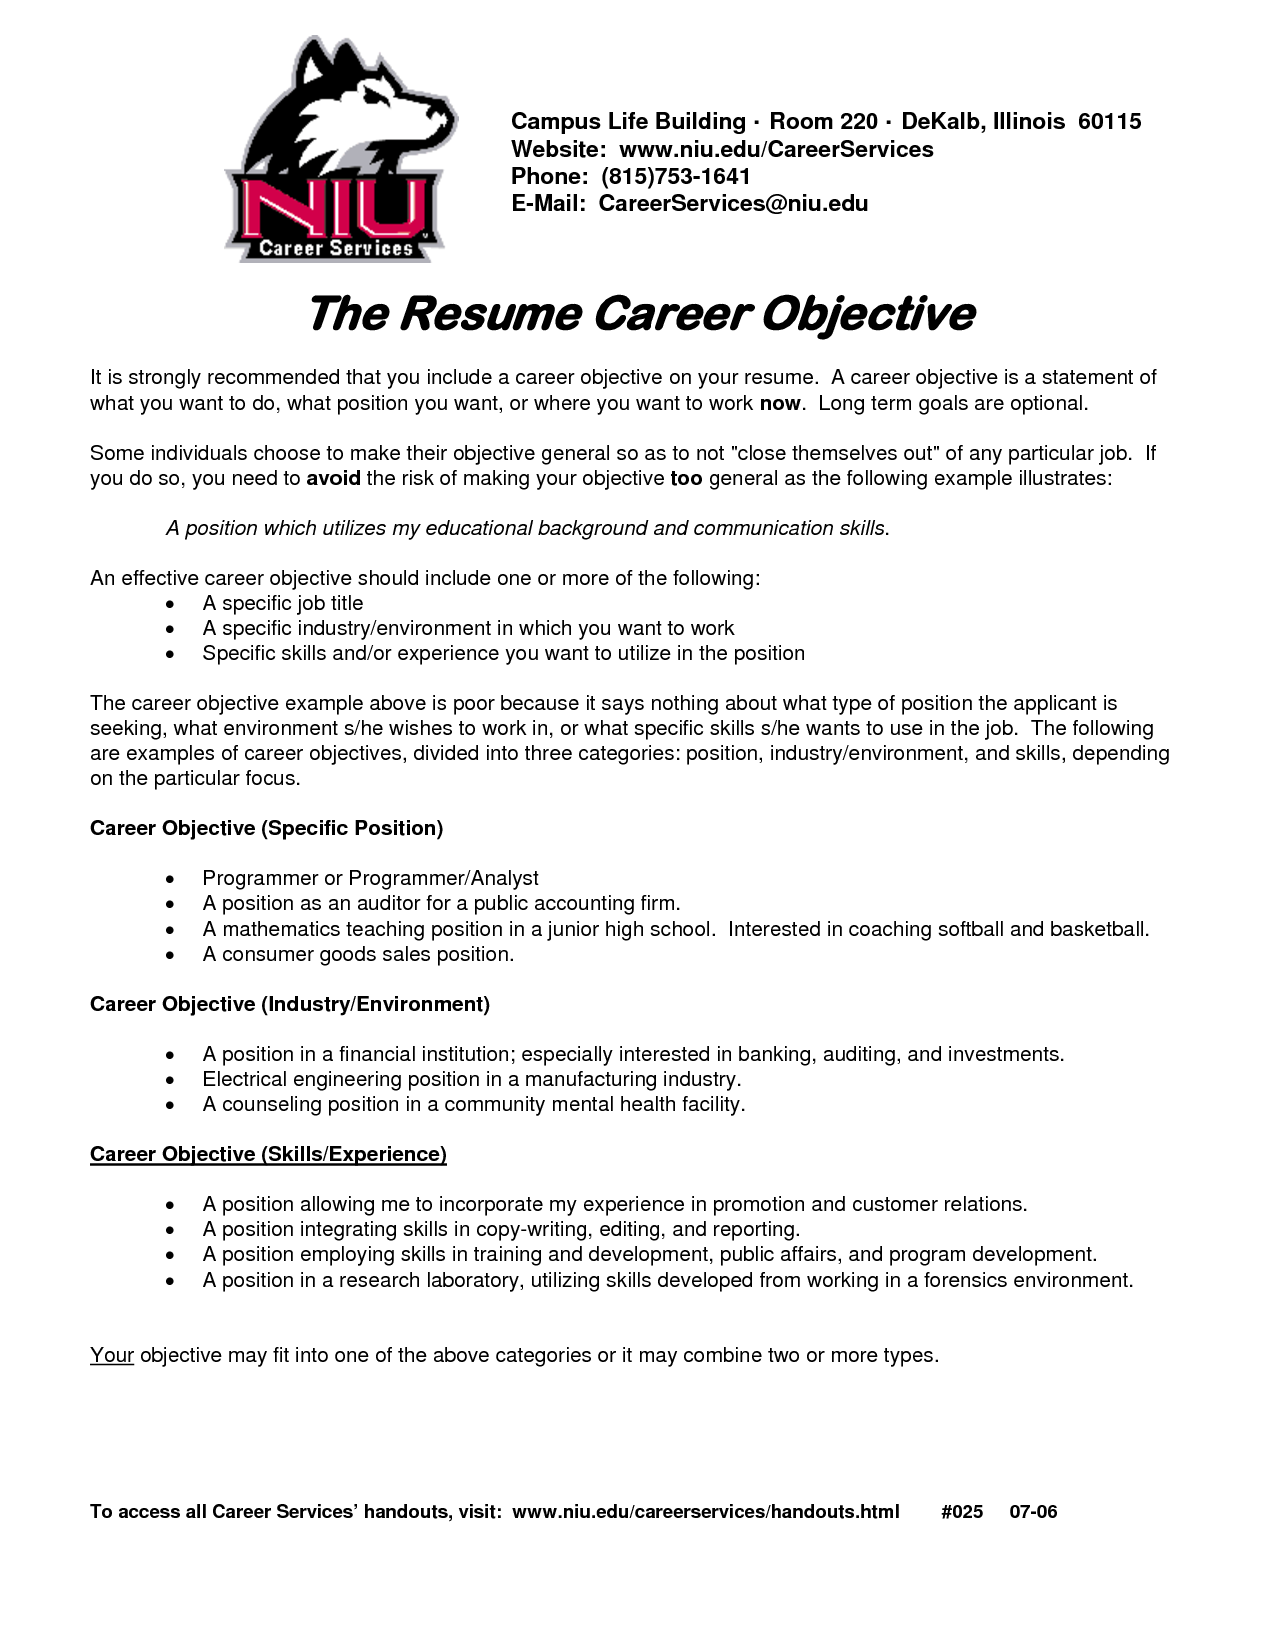 List Career Goal Examples For Resume with List of career Objectives for Resume